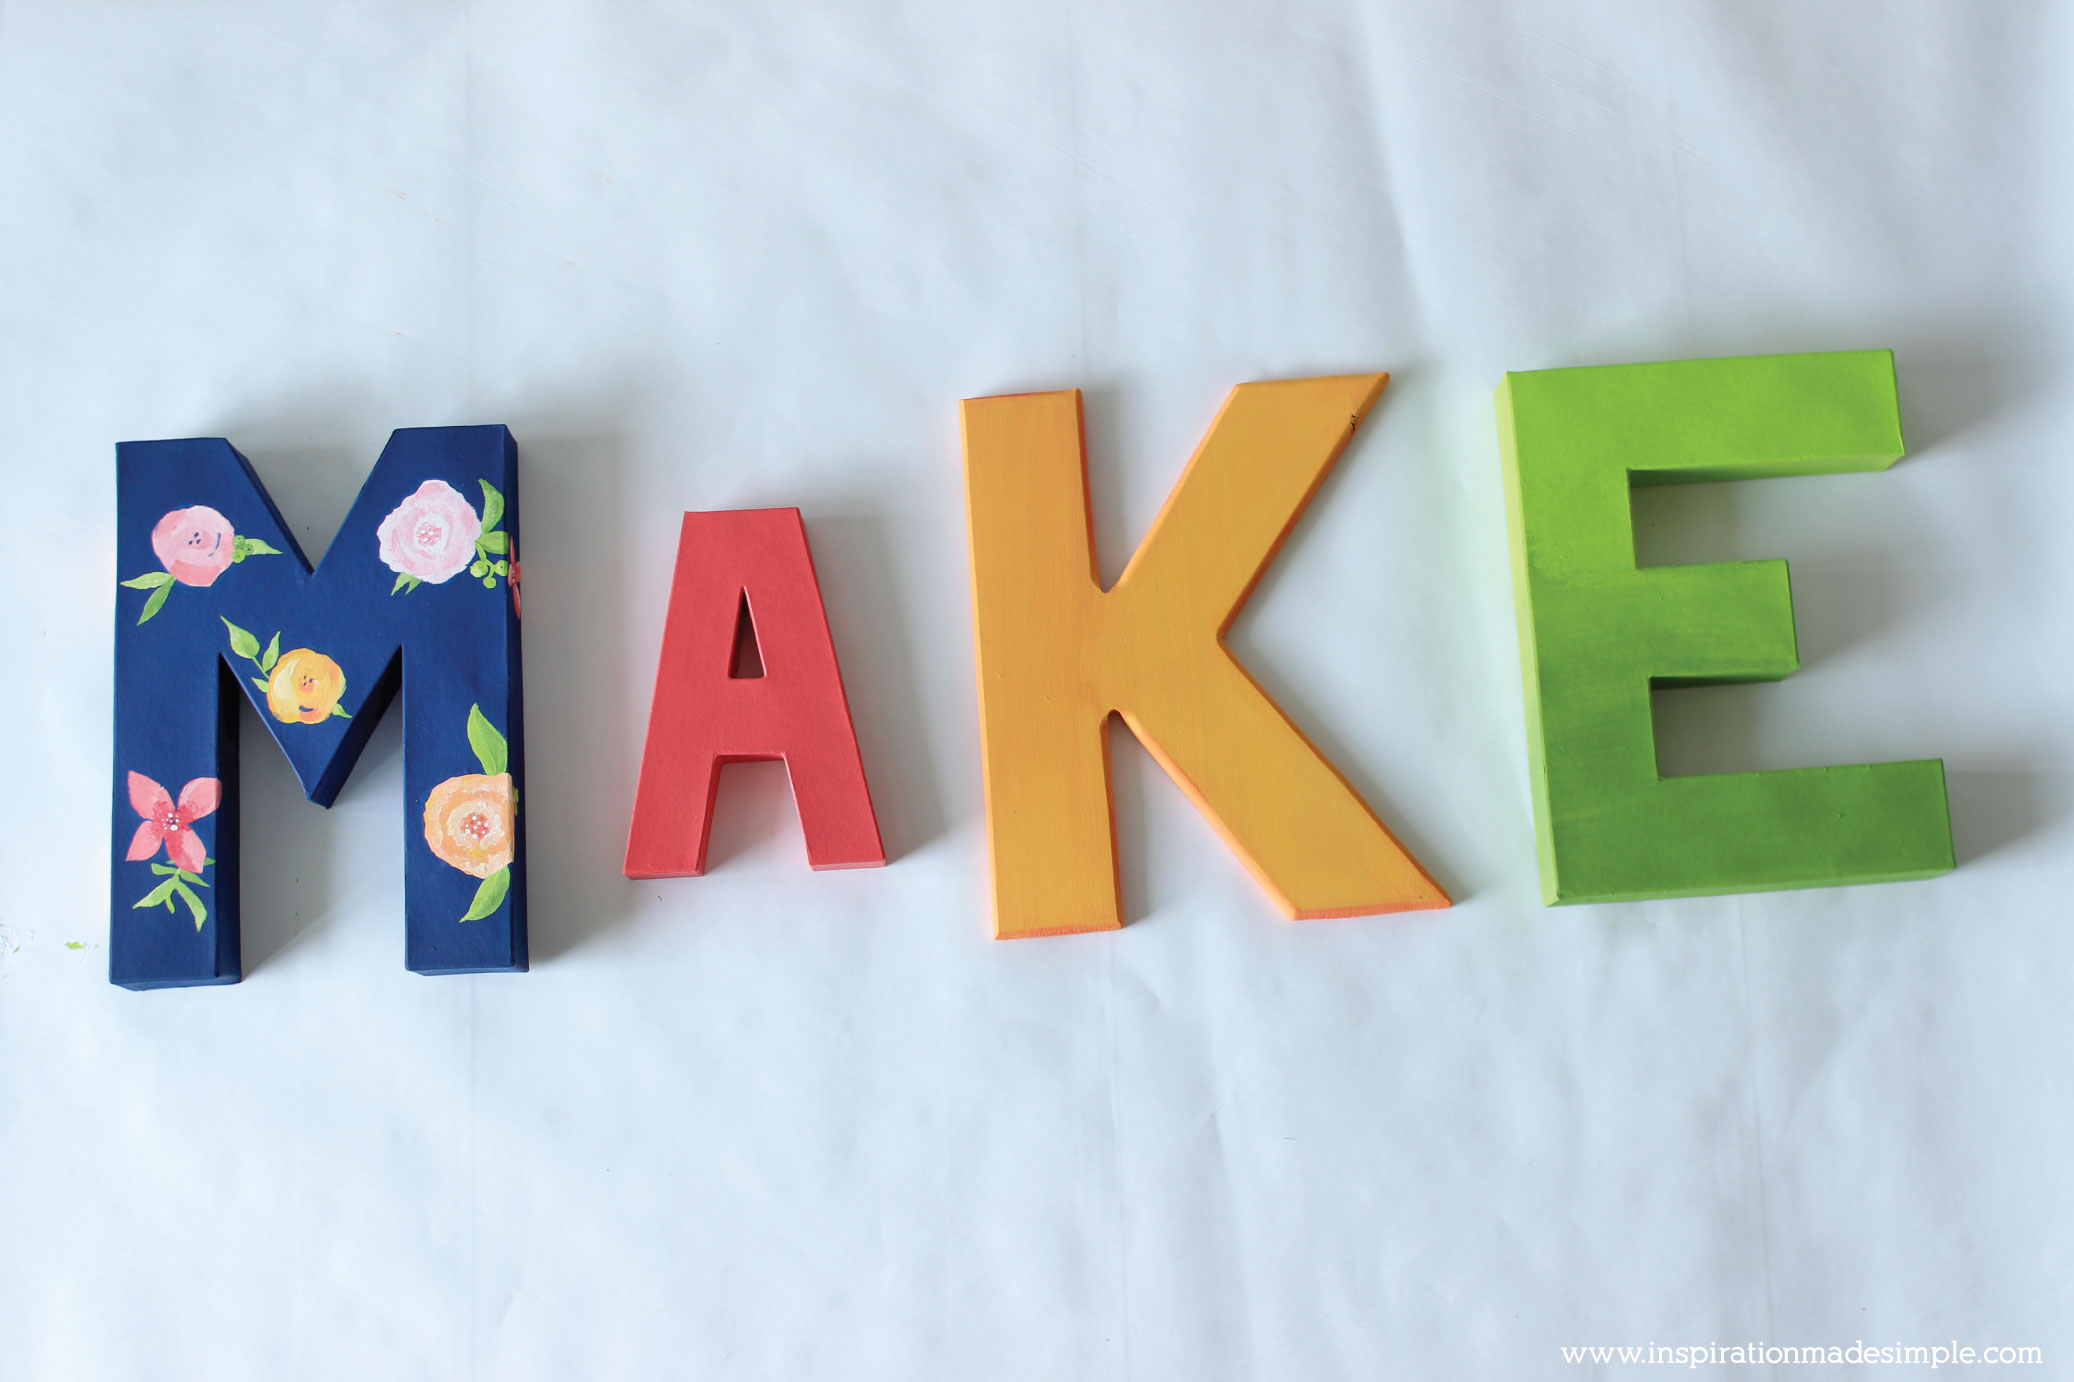 DIY Painted Letters - Navy Blue with Floral